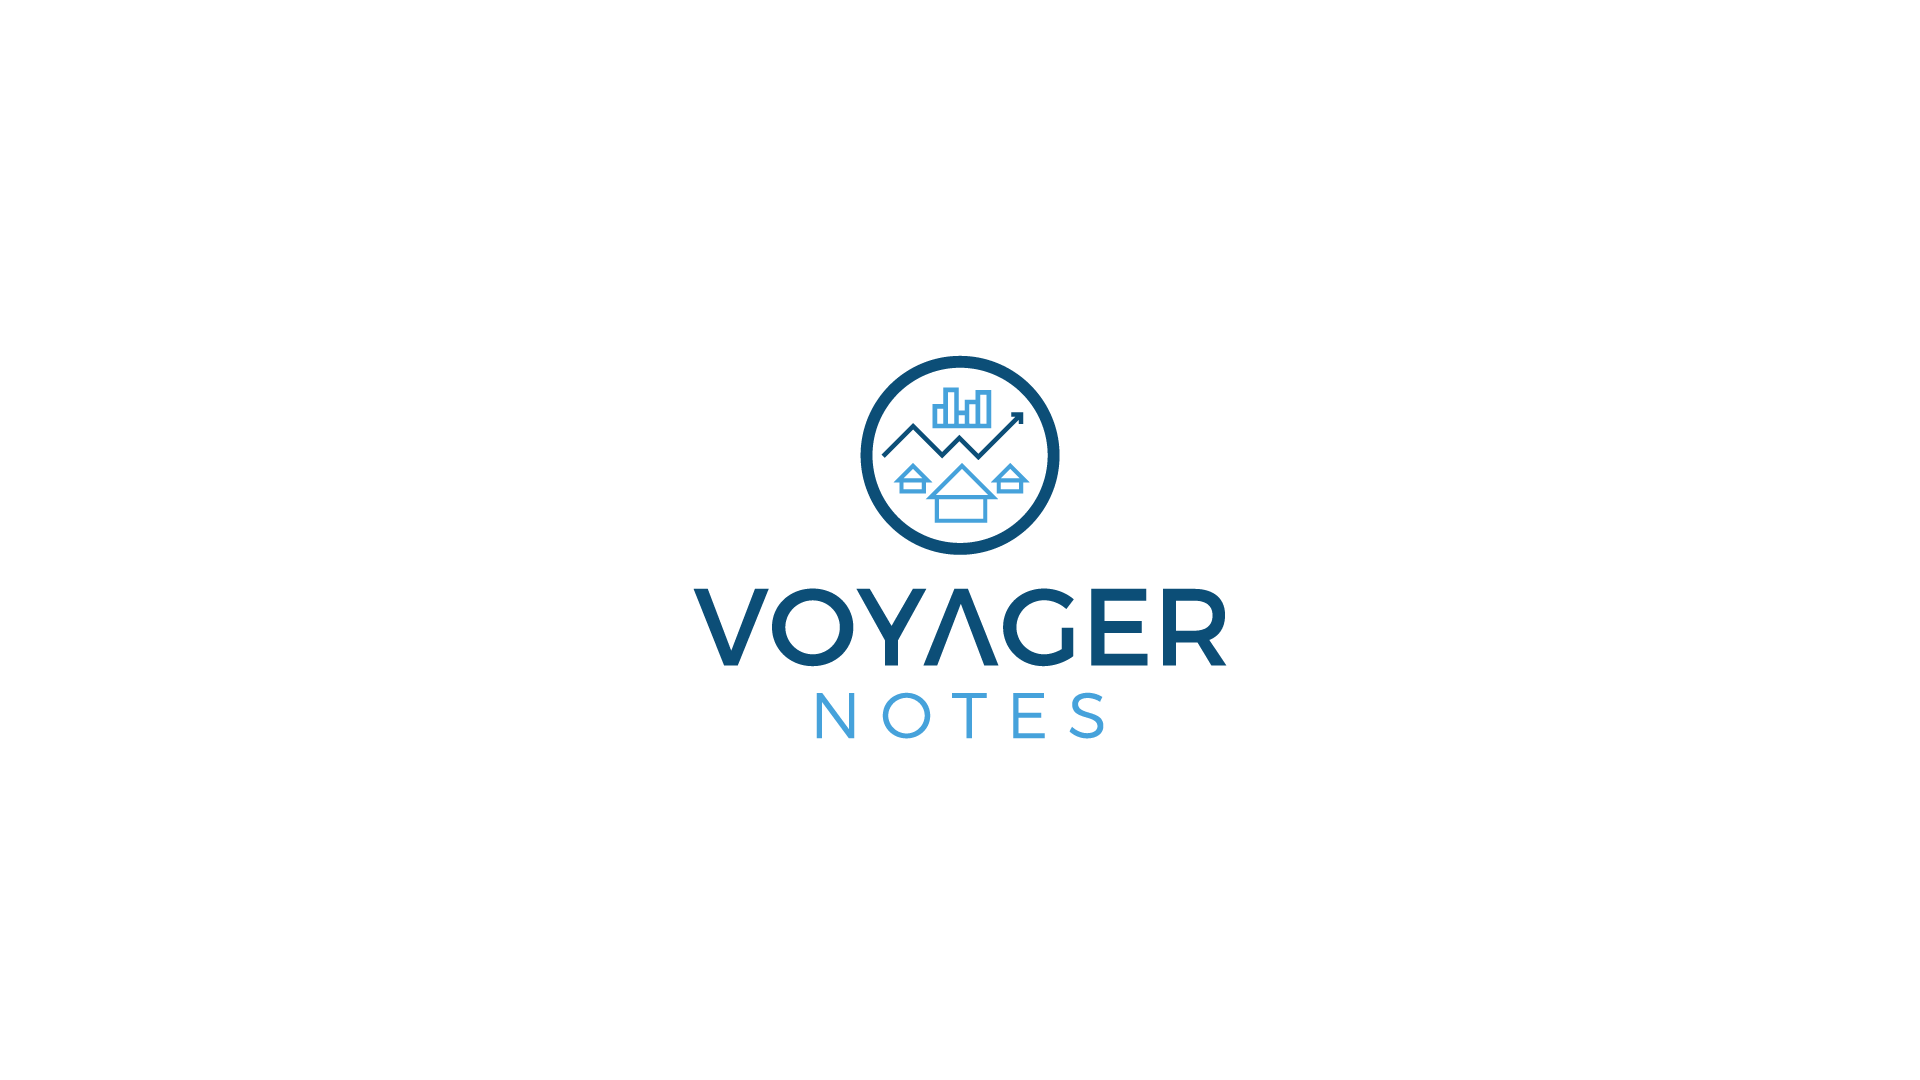 Voyager Notes needs a new logo